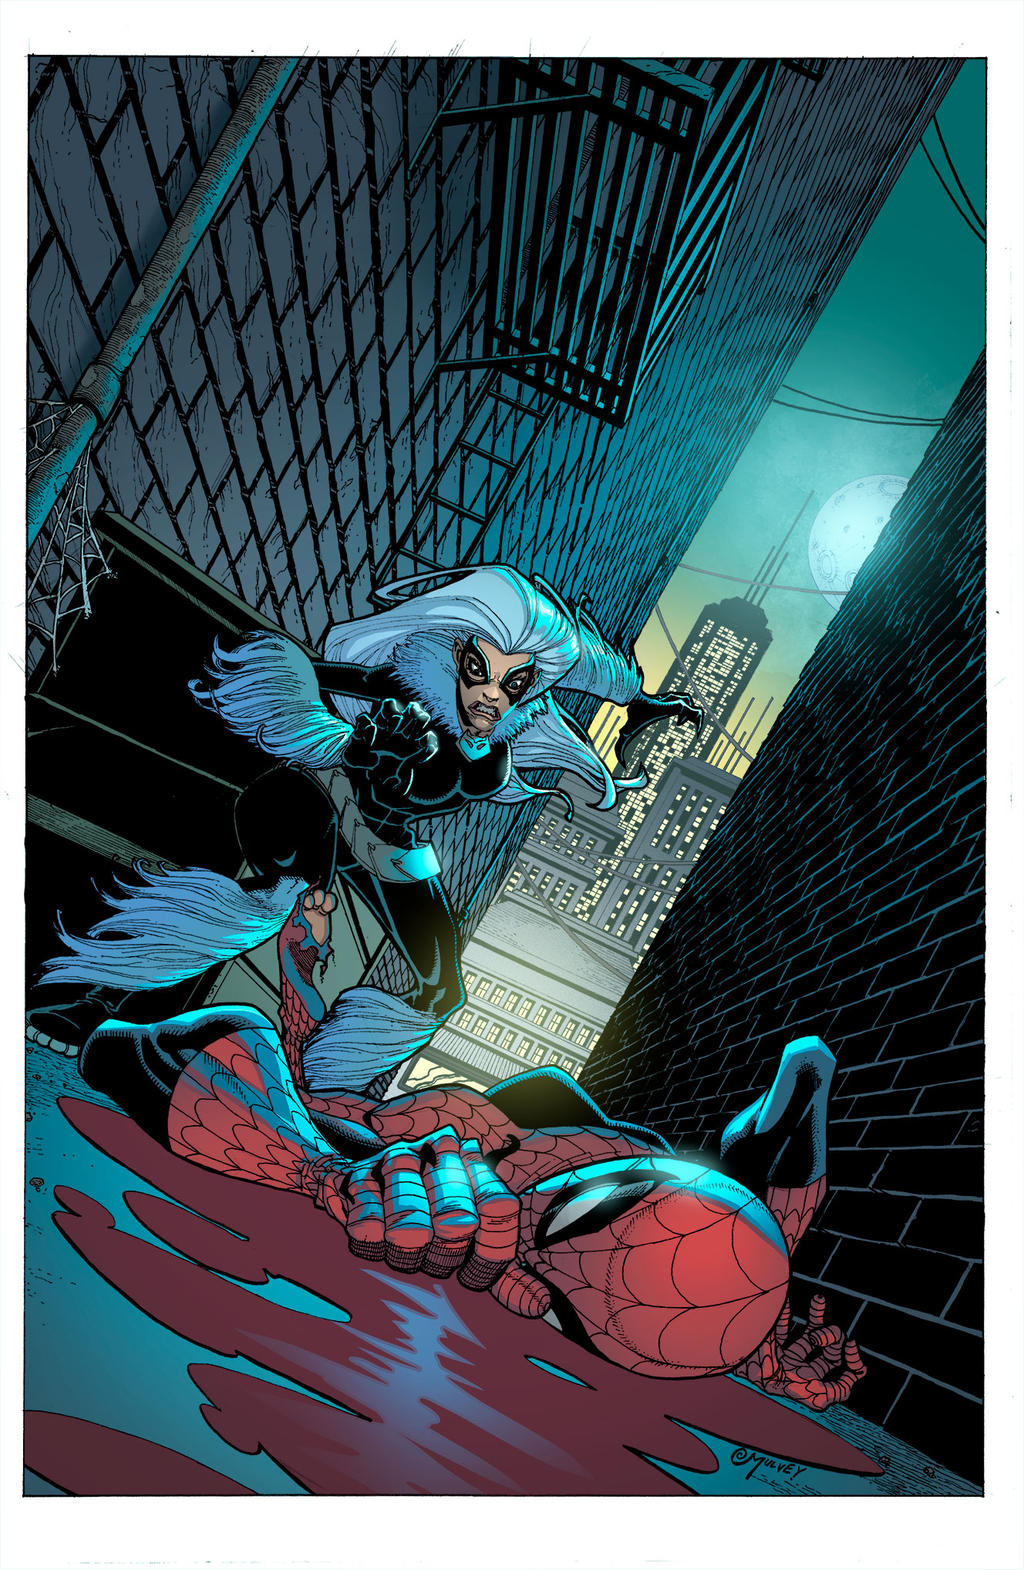 Aninimal Book: Spider-man / Black Cat pinup by Joe Mulvey by kmichaelrussell on DeviantArt